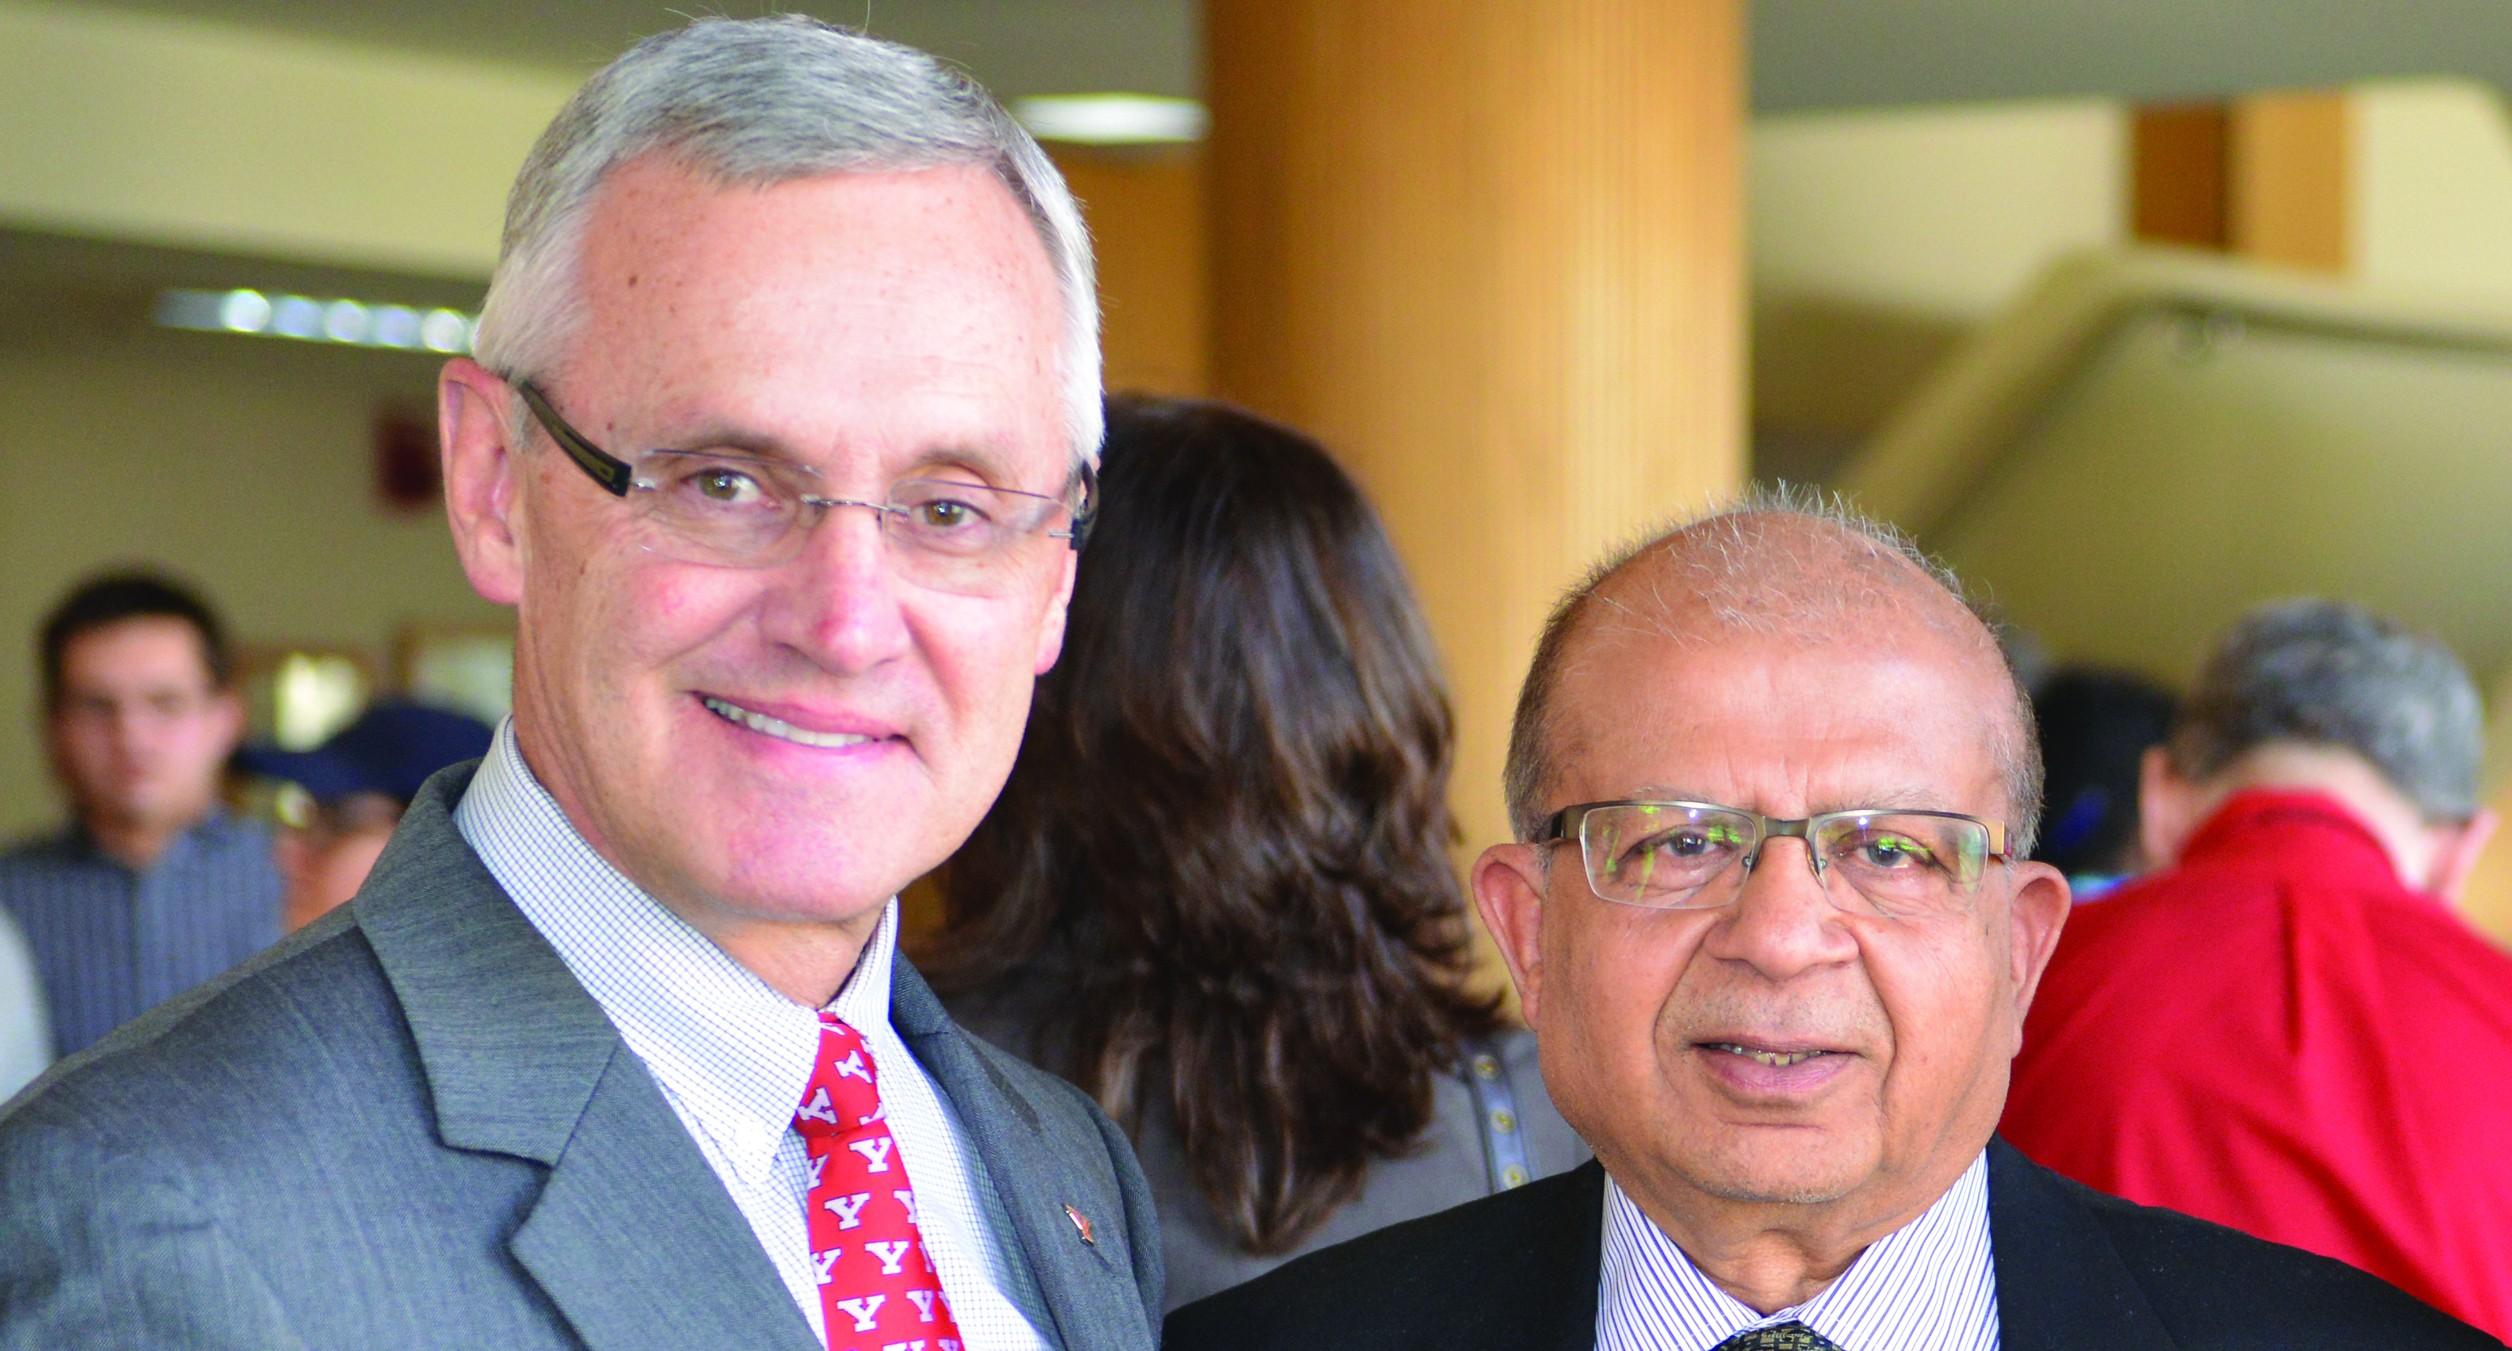 Former chair of the Board of Trustees, Sudershan Garg, will be retiring at the end of April. Photo courtesy of Ron Cole.